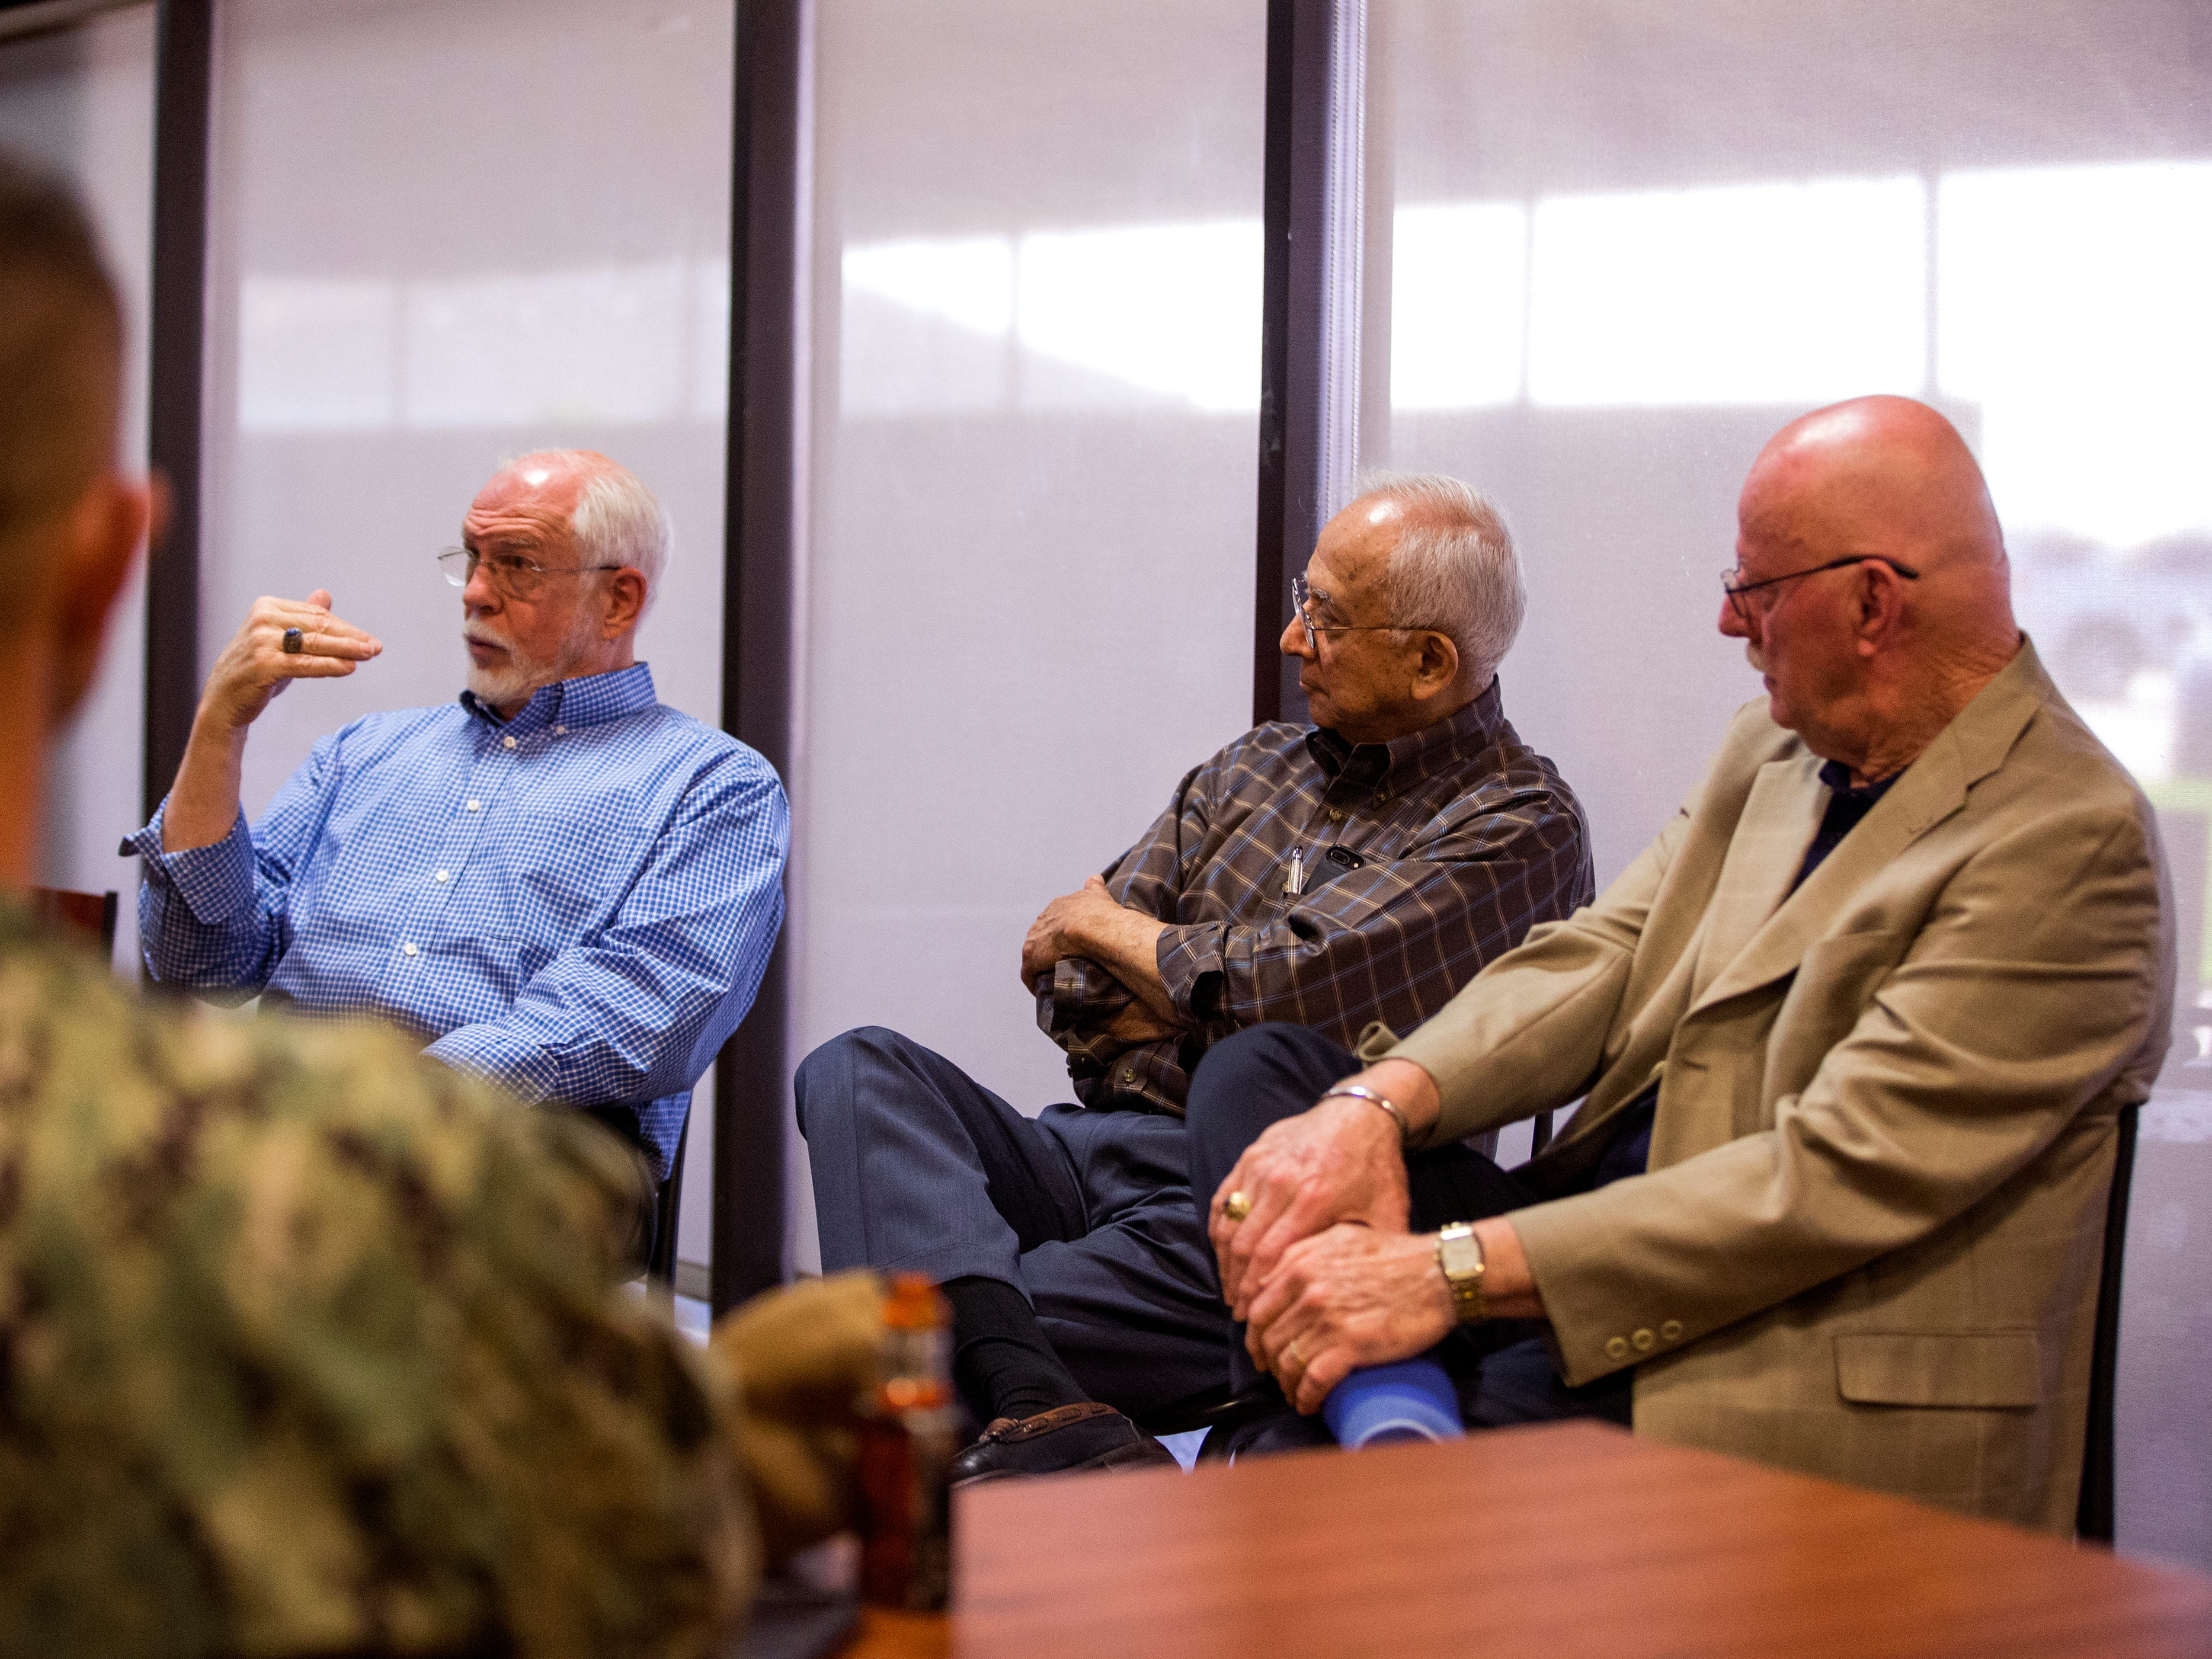 Former POWs retired Col. Dr. Thomas McNish (from left), retired Lt. Cmdr. Everett Alvarez Jr. and Capt. David Carey speak to pilots at Naval Air Station Kingsville on Wednesday, March 14, 2019 about their experiences. Alvarez said one of the things that helped them survive captivity was sticking together with a common goal of getting home.